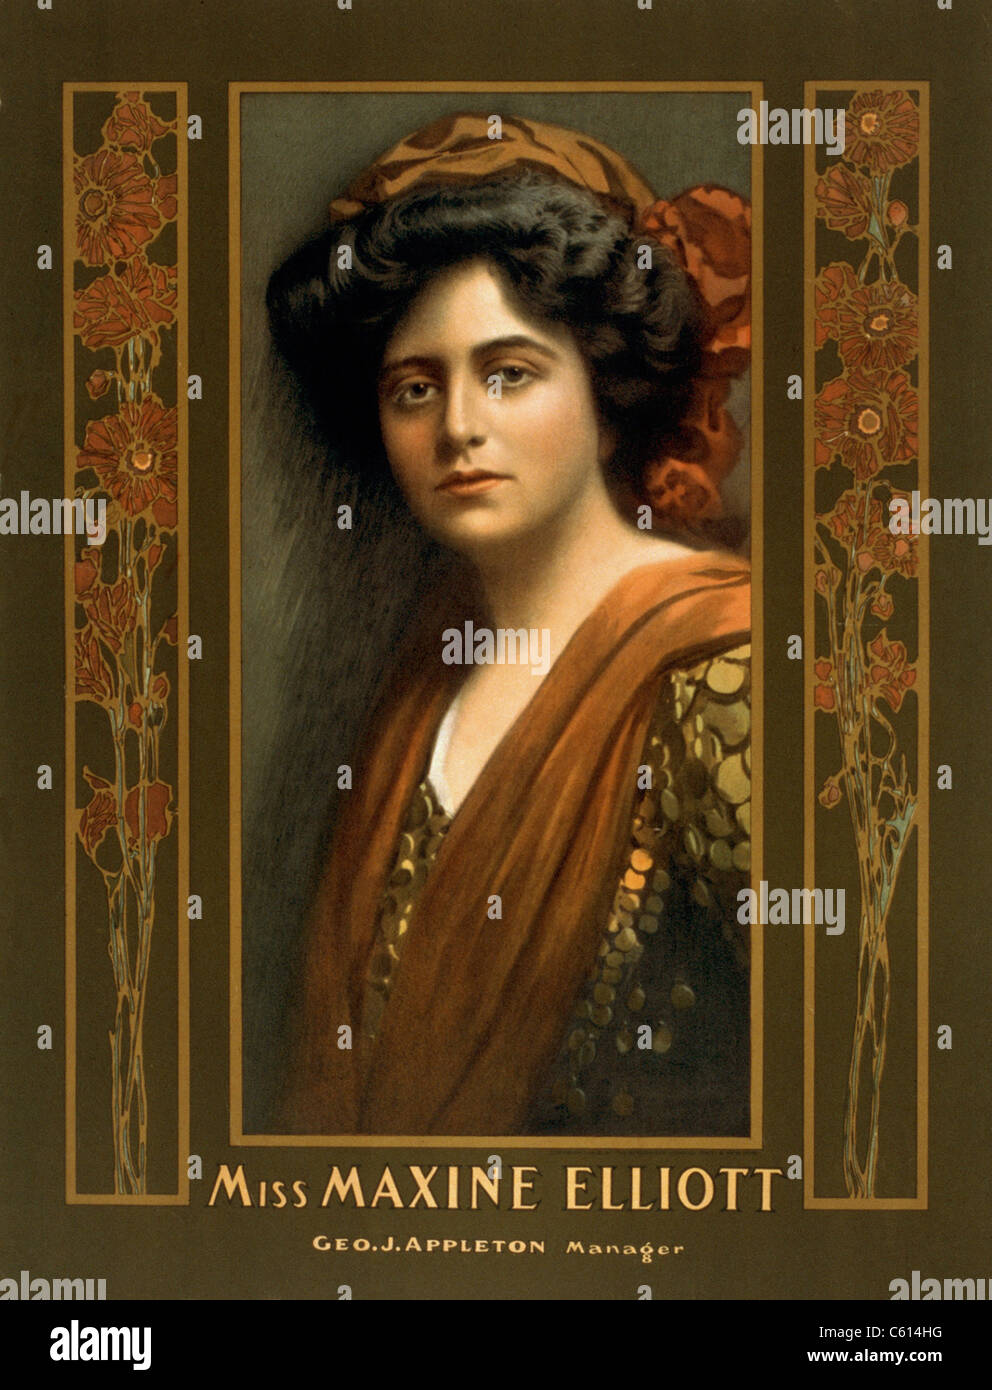 Maxine Elliott 1868-1940 an actress romantically linked with J.P. Morgan in the early 1900s. He is believed to have - Stock Image